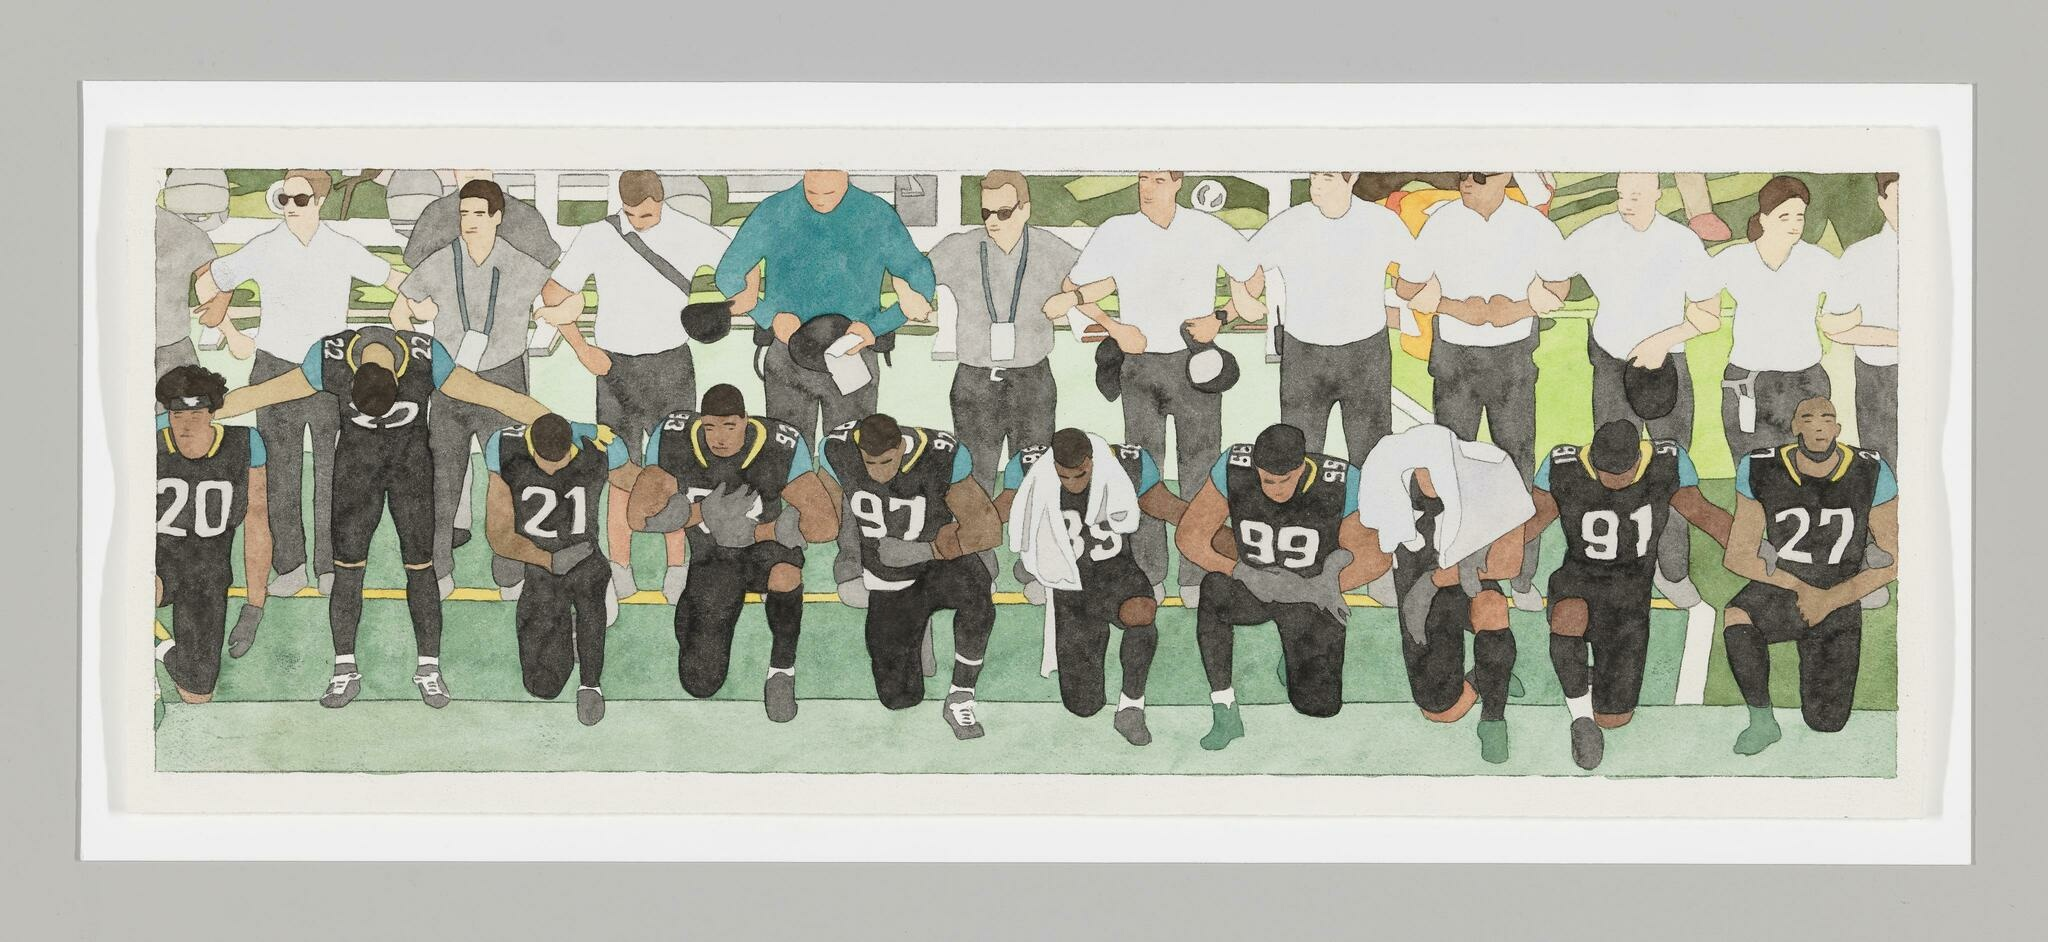 Animation still of Black football players taking a knee in front of a row of faceless white figures who remain standing